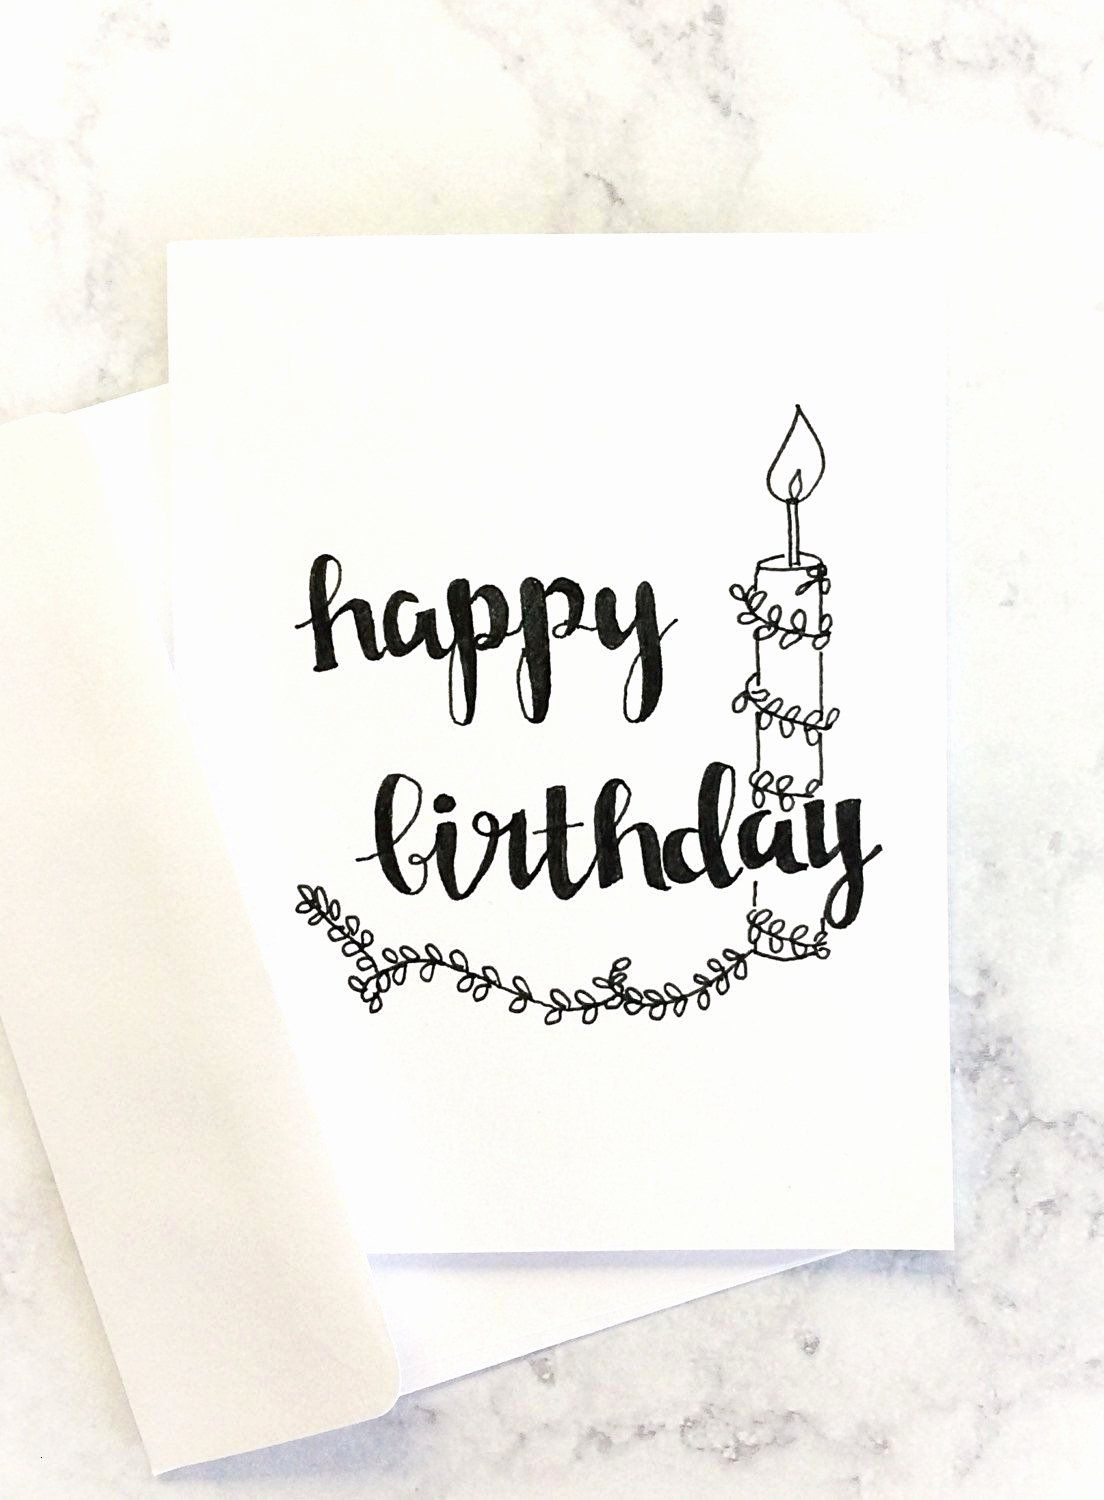 Congratulations Cards Template Beautiful Art Greeting Cards New Free Party Printables Printa Birthday Cards Best Friend Birthday Cards Butterfly Birthday Cards